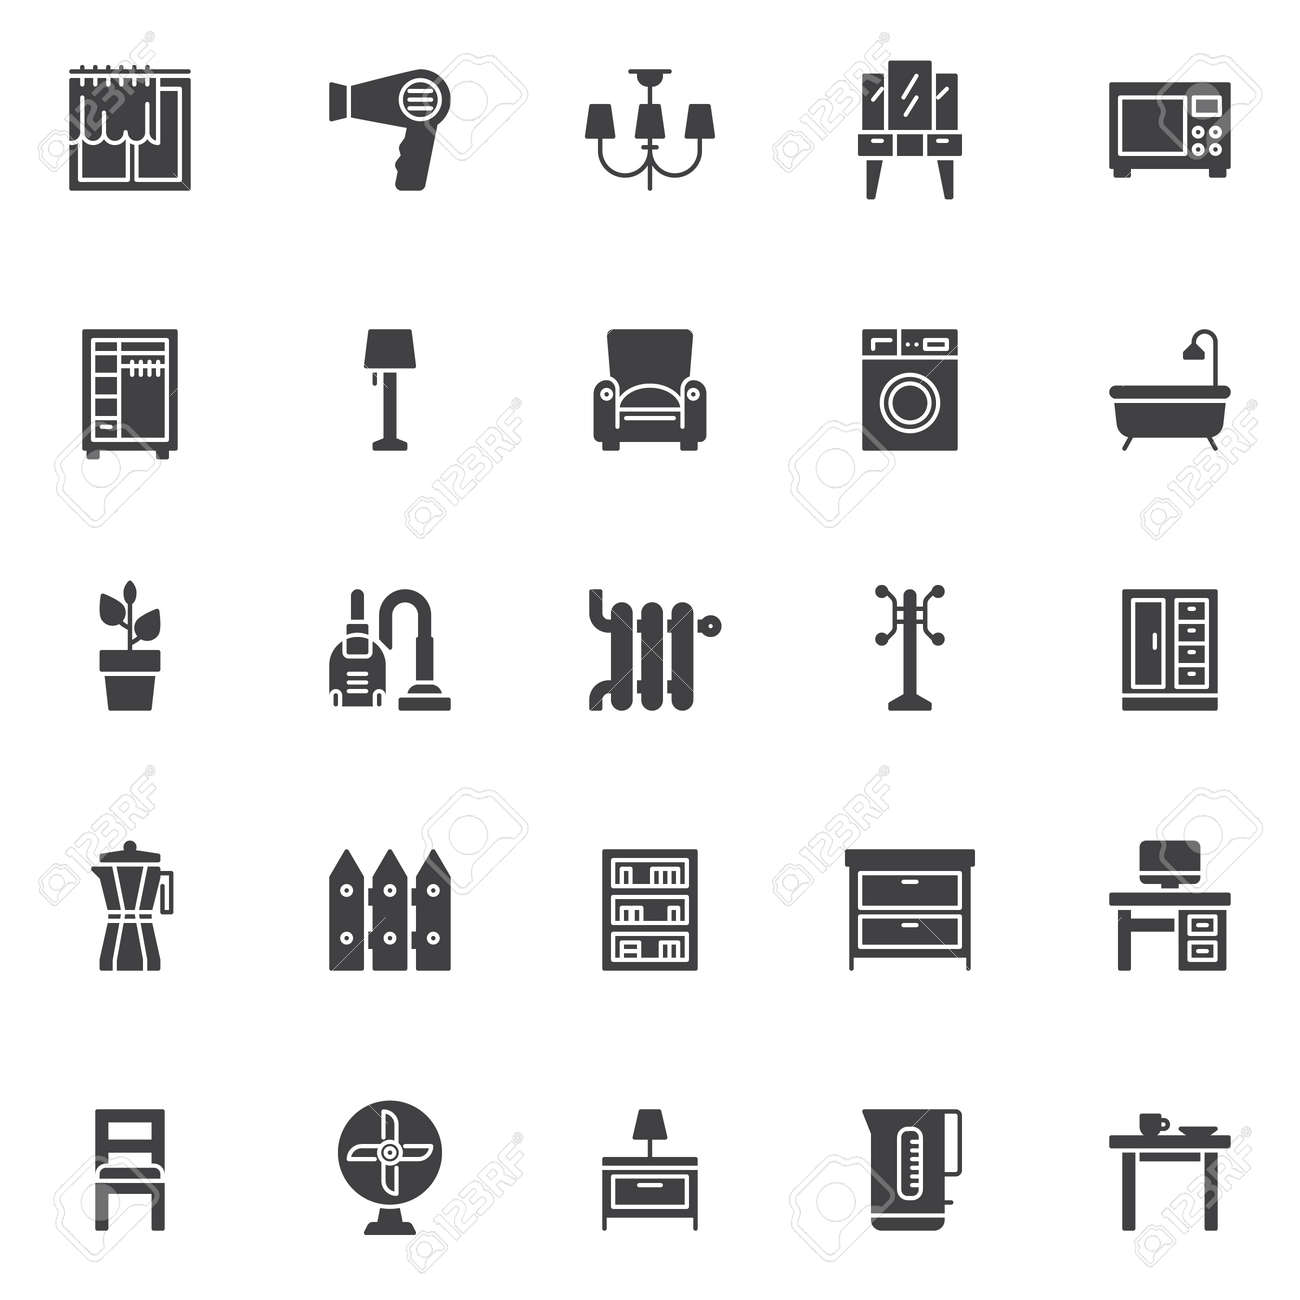 Home Accessories Vector Icons Set Modern Solid Symbol Collection